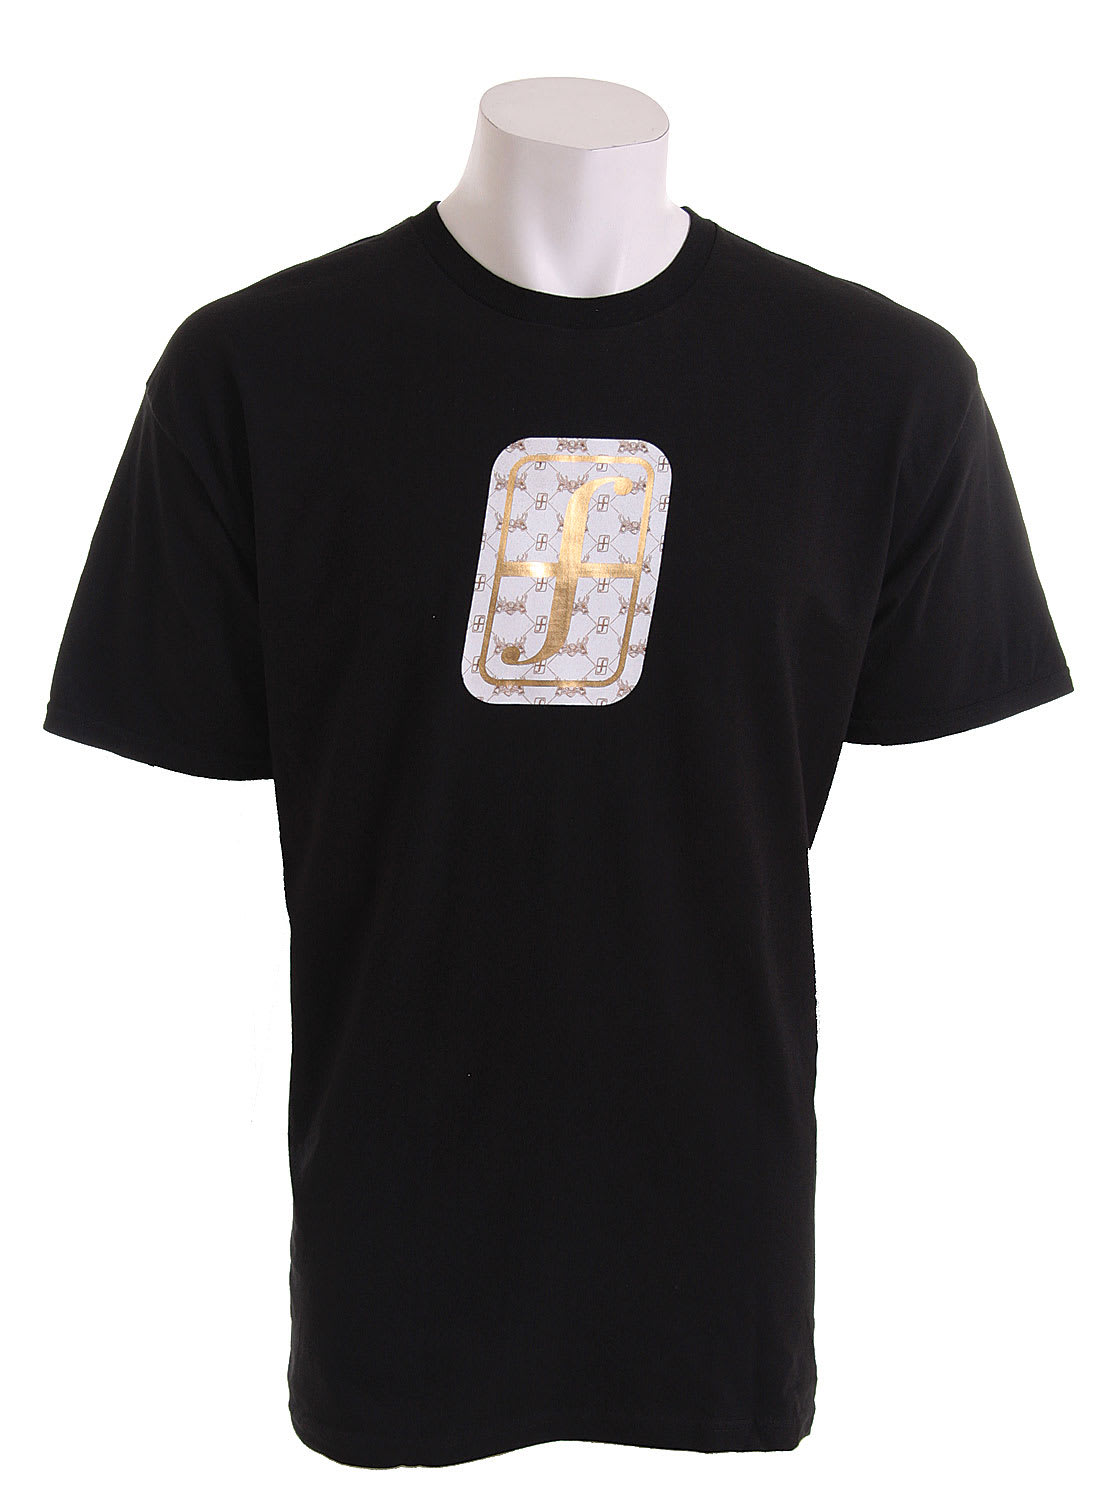 Shop for Forum Foil Icon T-Shirt Black - Men's